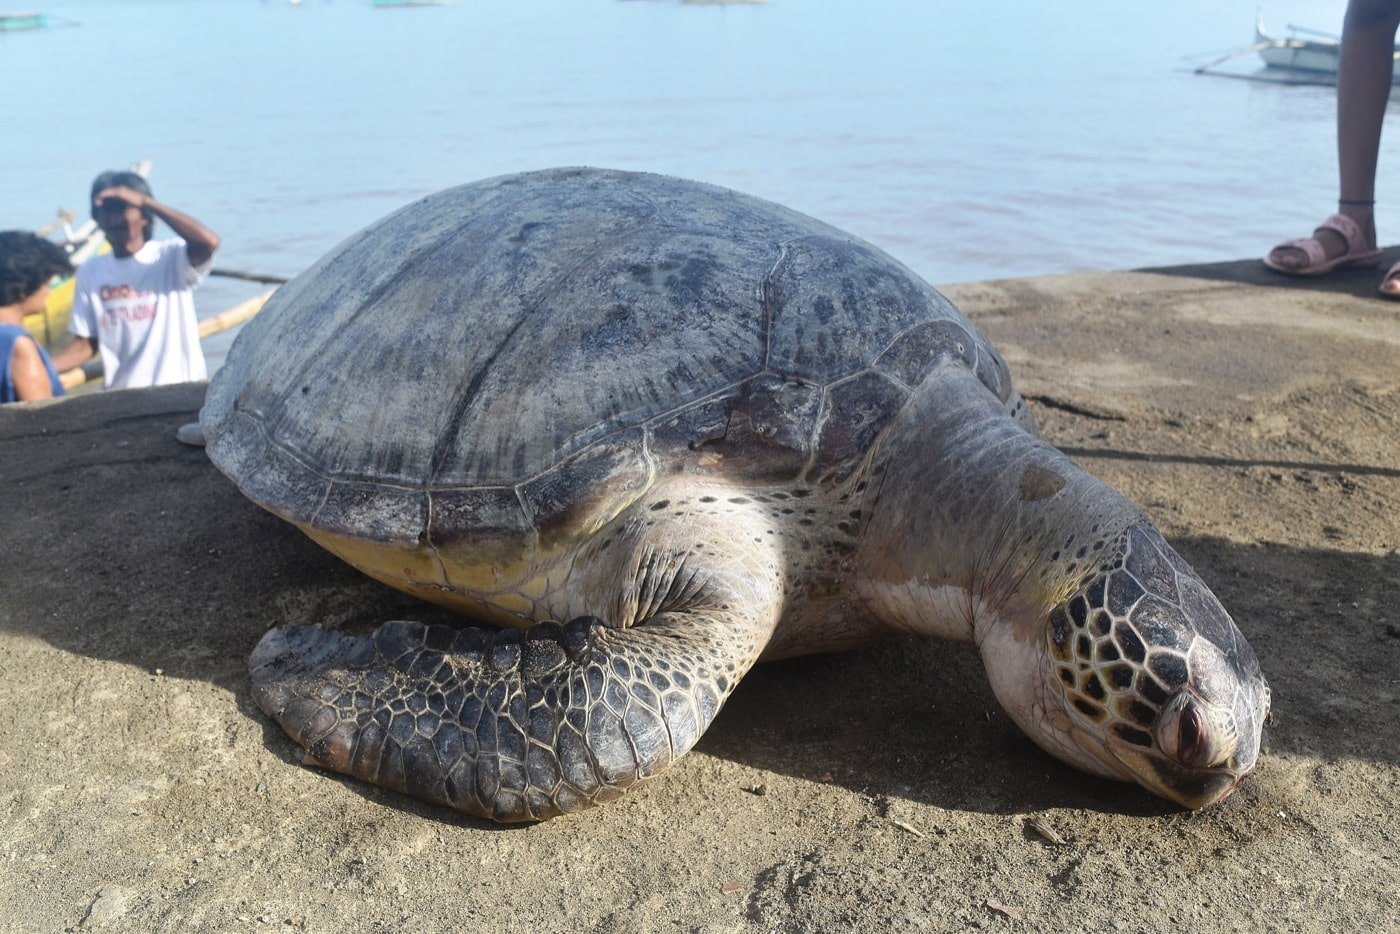 a sea turtle with ashy texture lying dead on a beach with people in the background